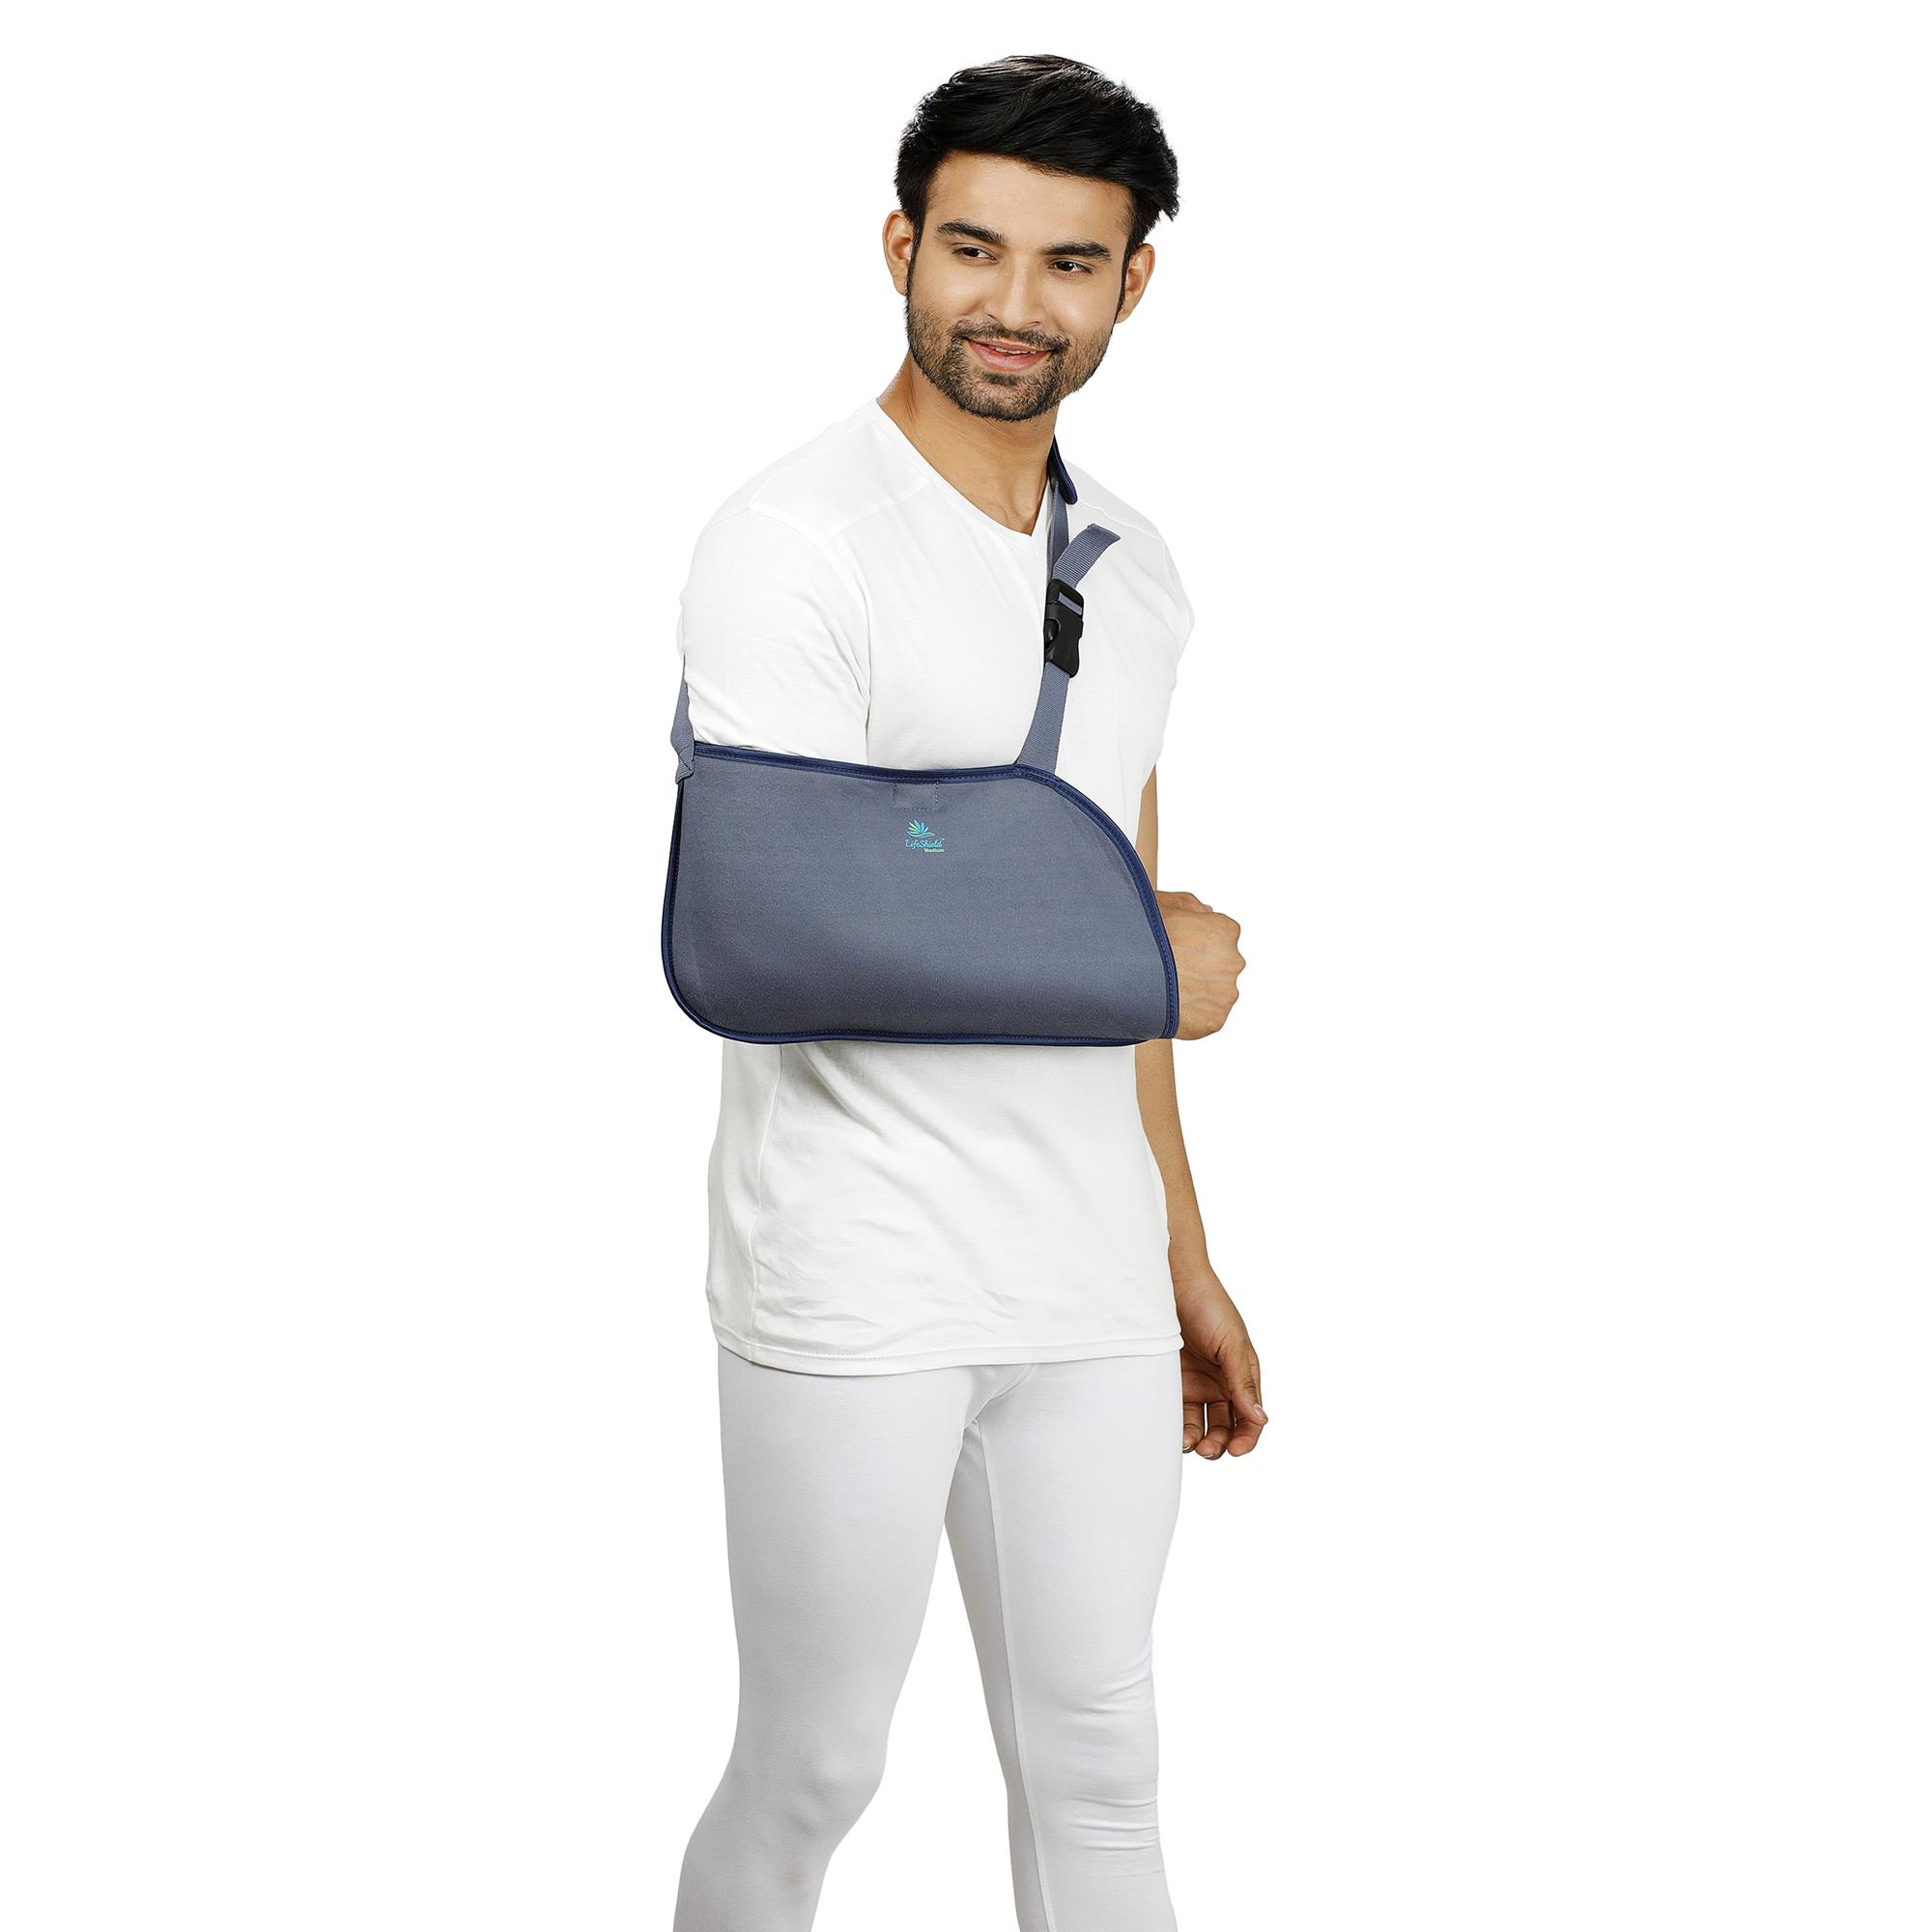 Lifeshield Arm Sling Pouch Baggy: Sling Is Used To Immobilize The Arm Movement While Injury (X Large)